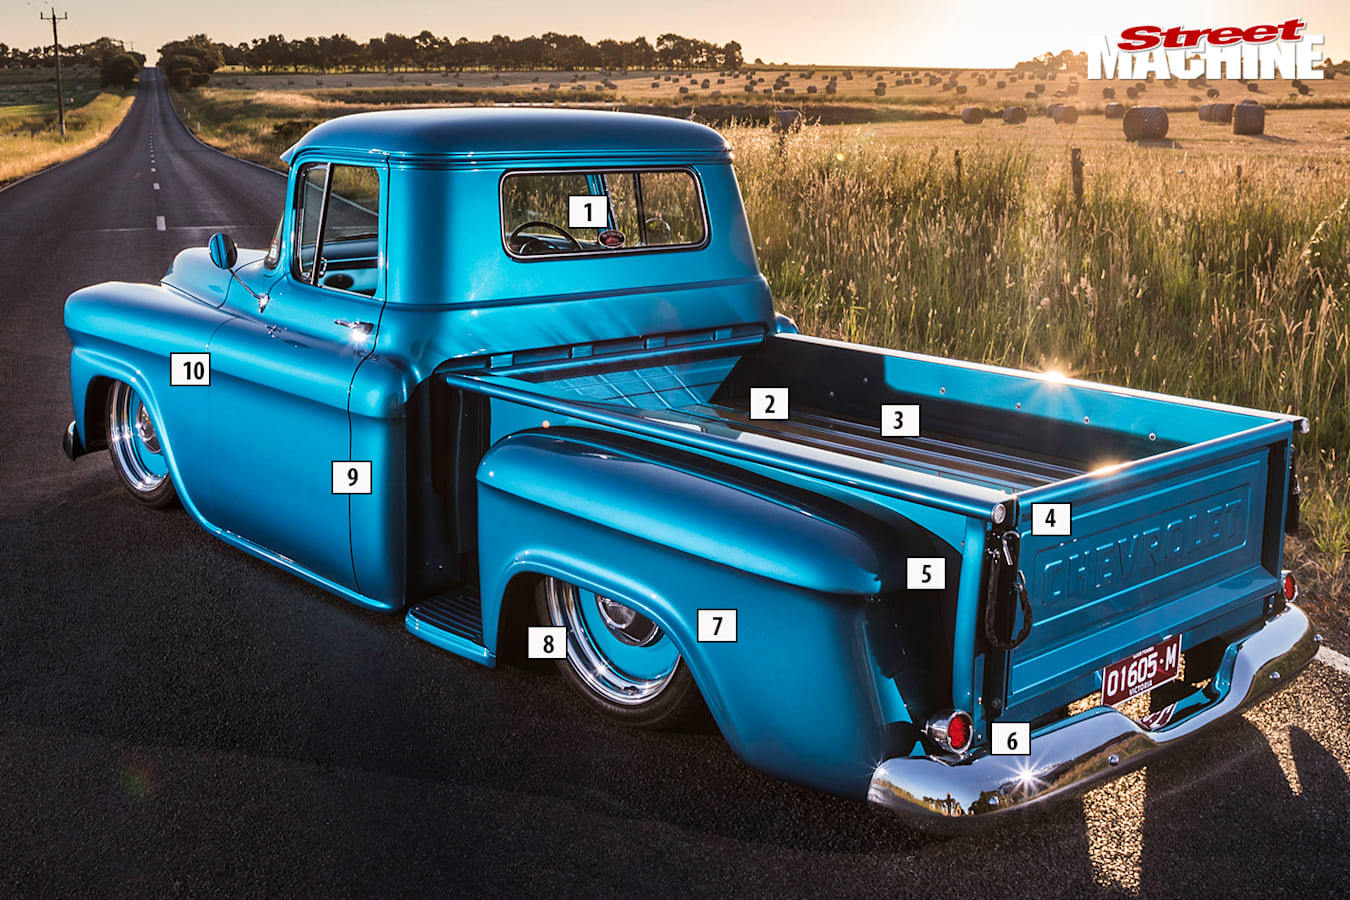 Street Machine Features Chevrolet Apache Rear Angle Detail